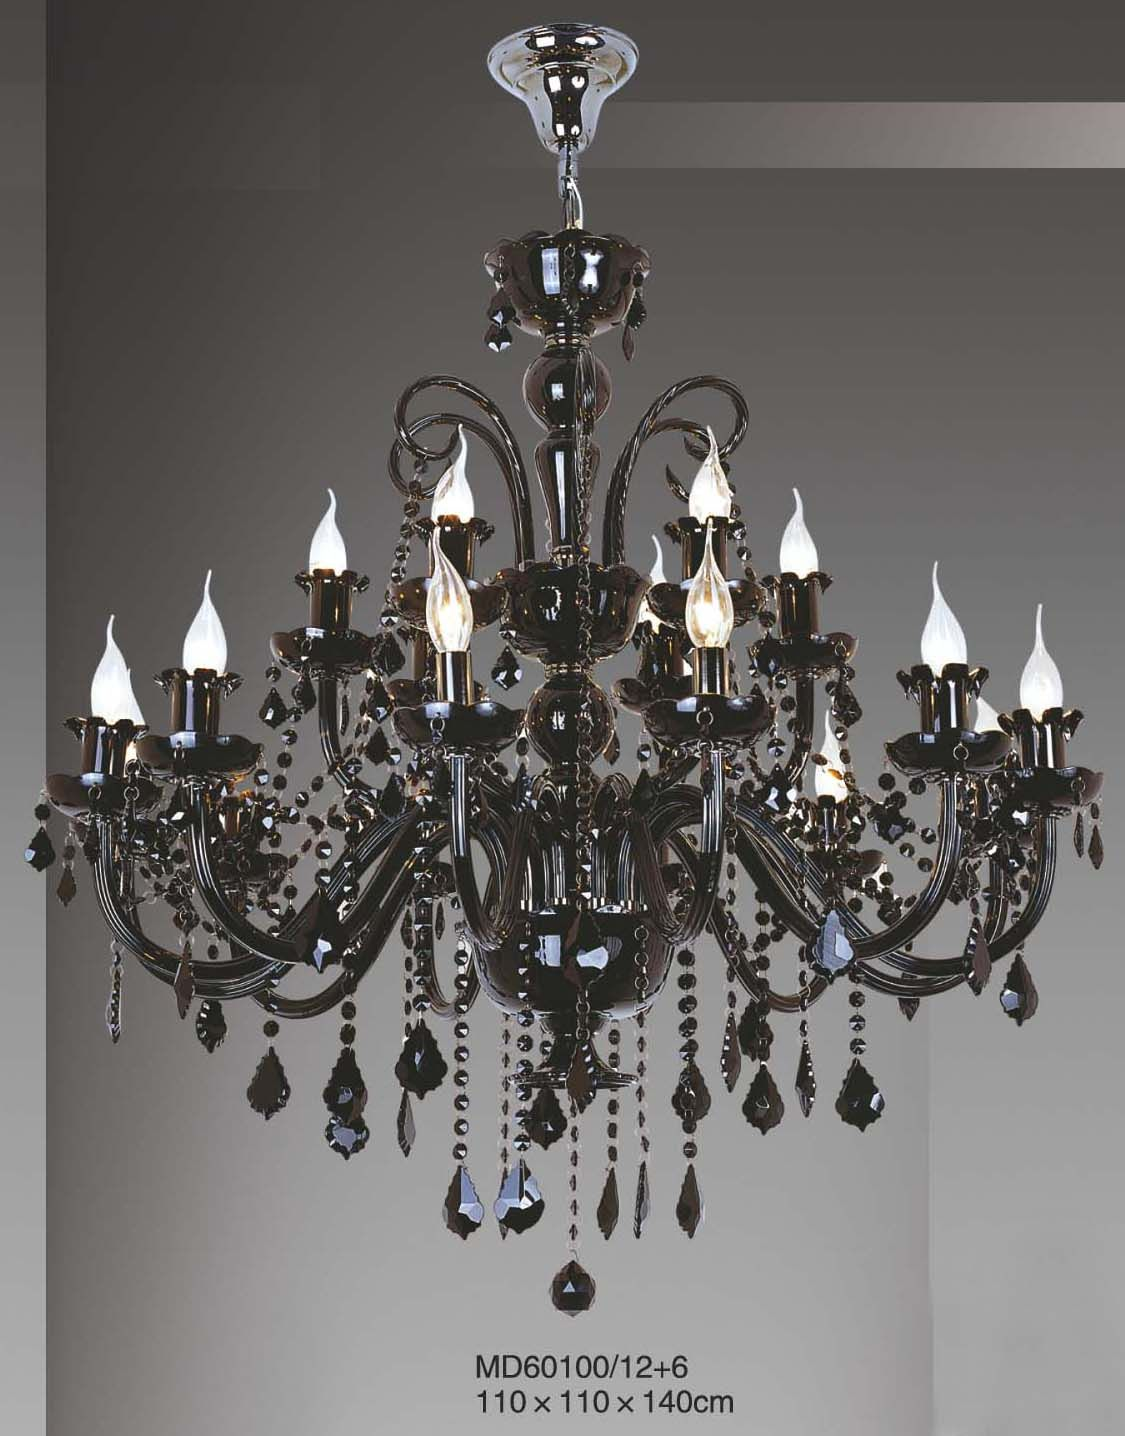 China Hotel Re Black Chandelier Md60100 12 6 Photos